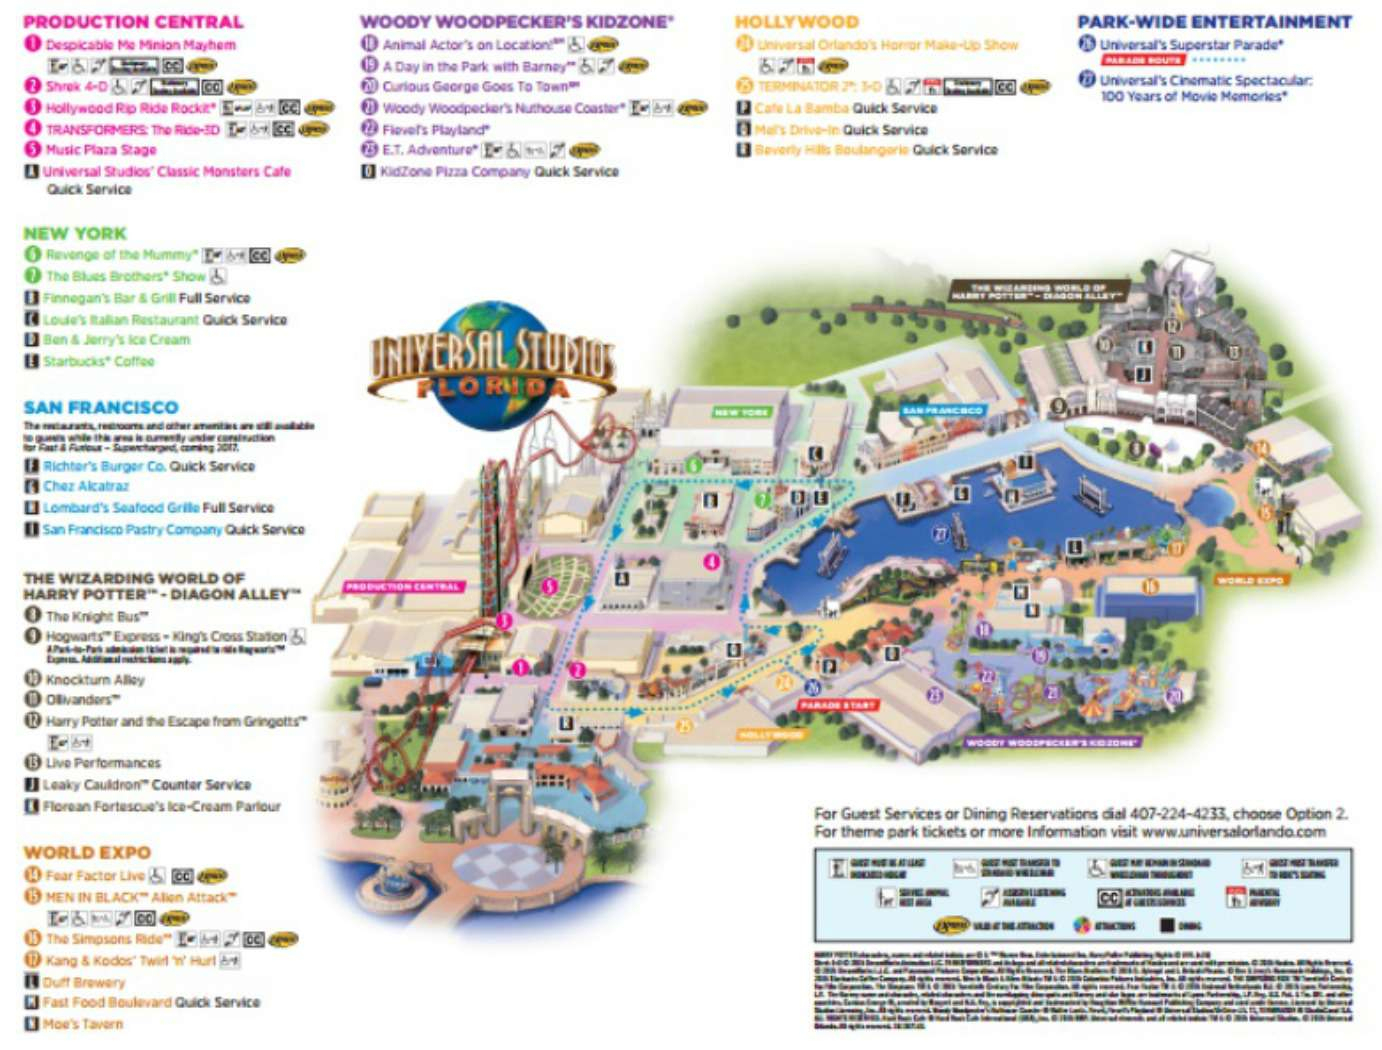 Maps Of Universal Orlando Resort's Parks And Hotels - Universal Studios Florida Map 2018